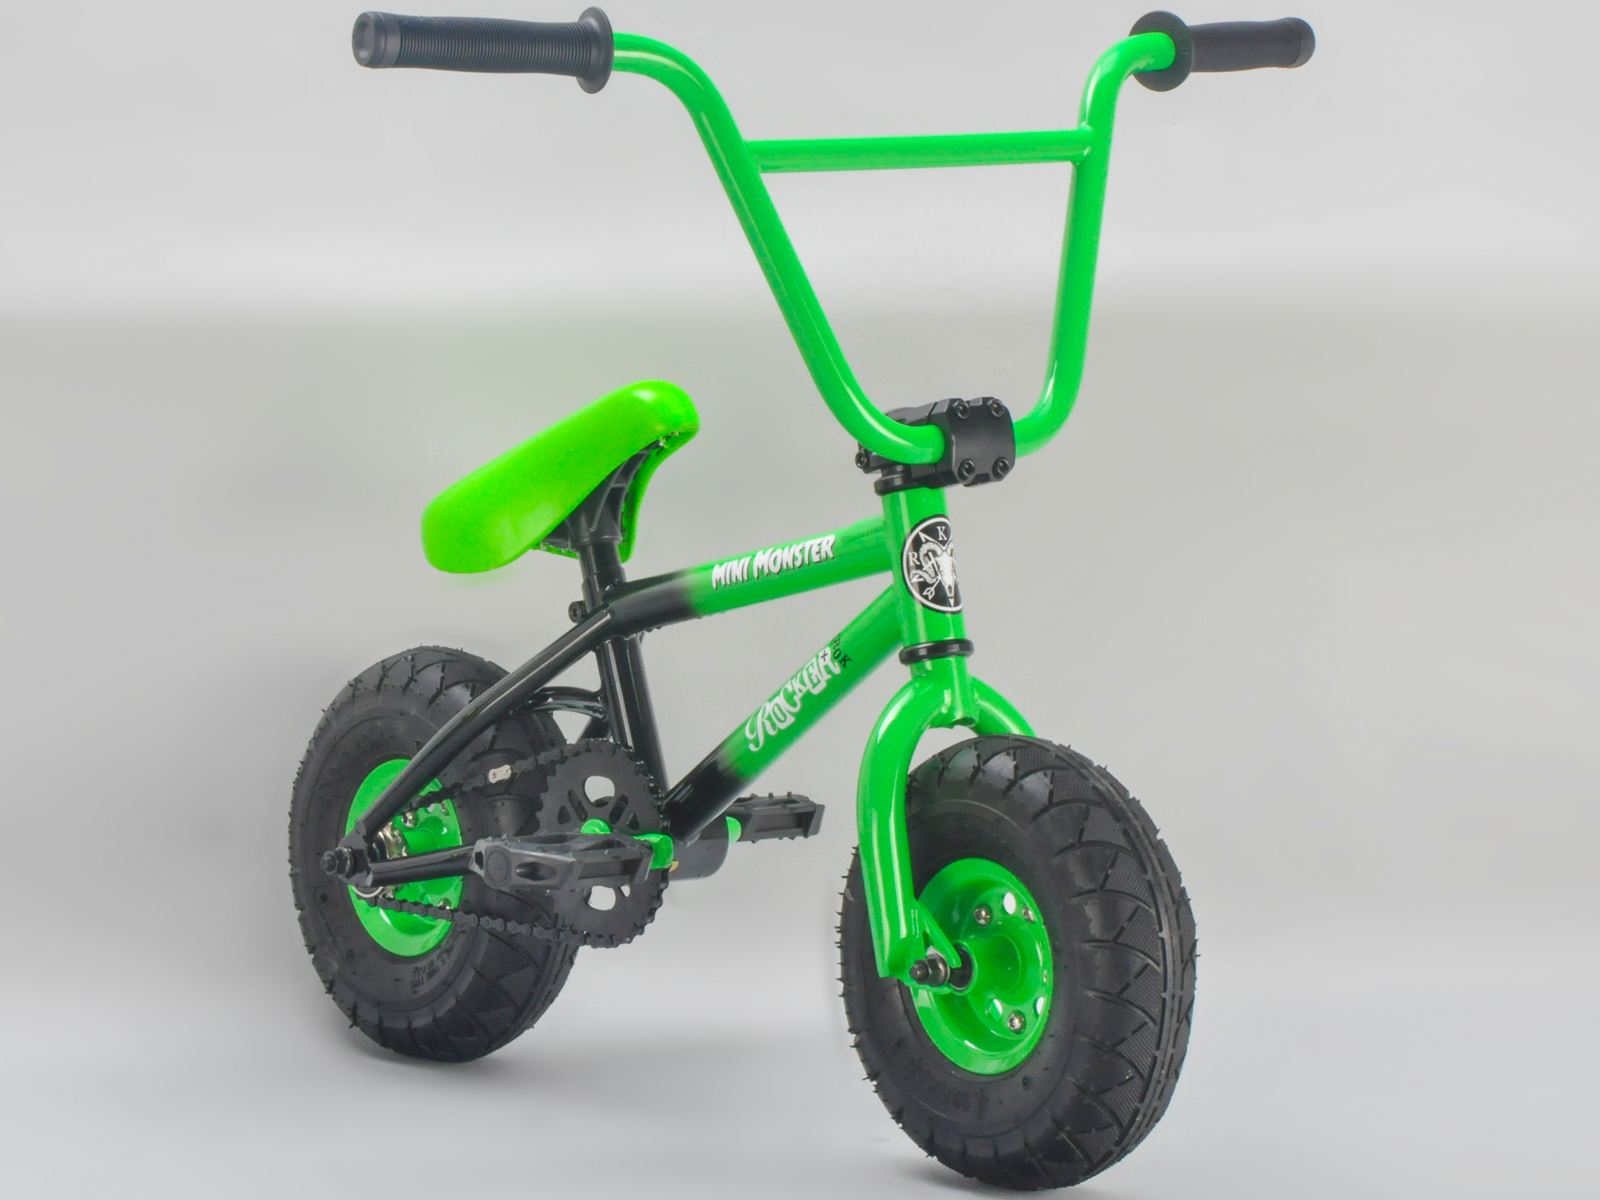 Rocker Bmx Mini Bmx Bike Mini Monster Green Irok Rkr Ebay